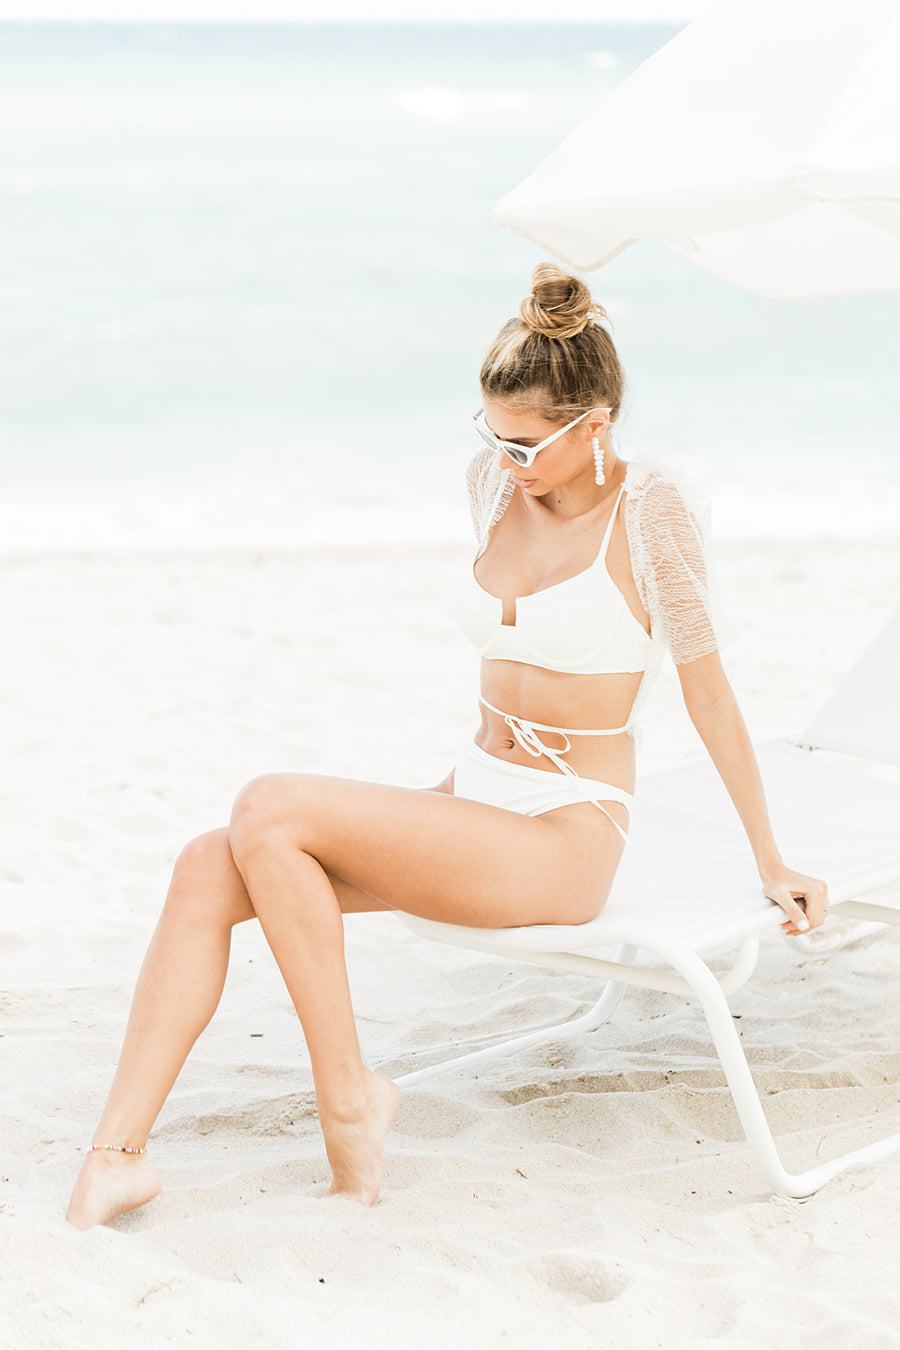 Classic Bride Cat Eye Sunglasses in White - The Beach Bride by Chic Parisien, a destination for beach weddings, bachelorettes and honeymoons